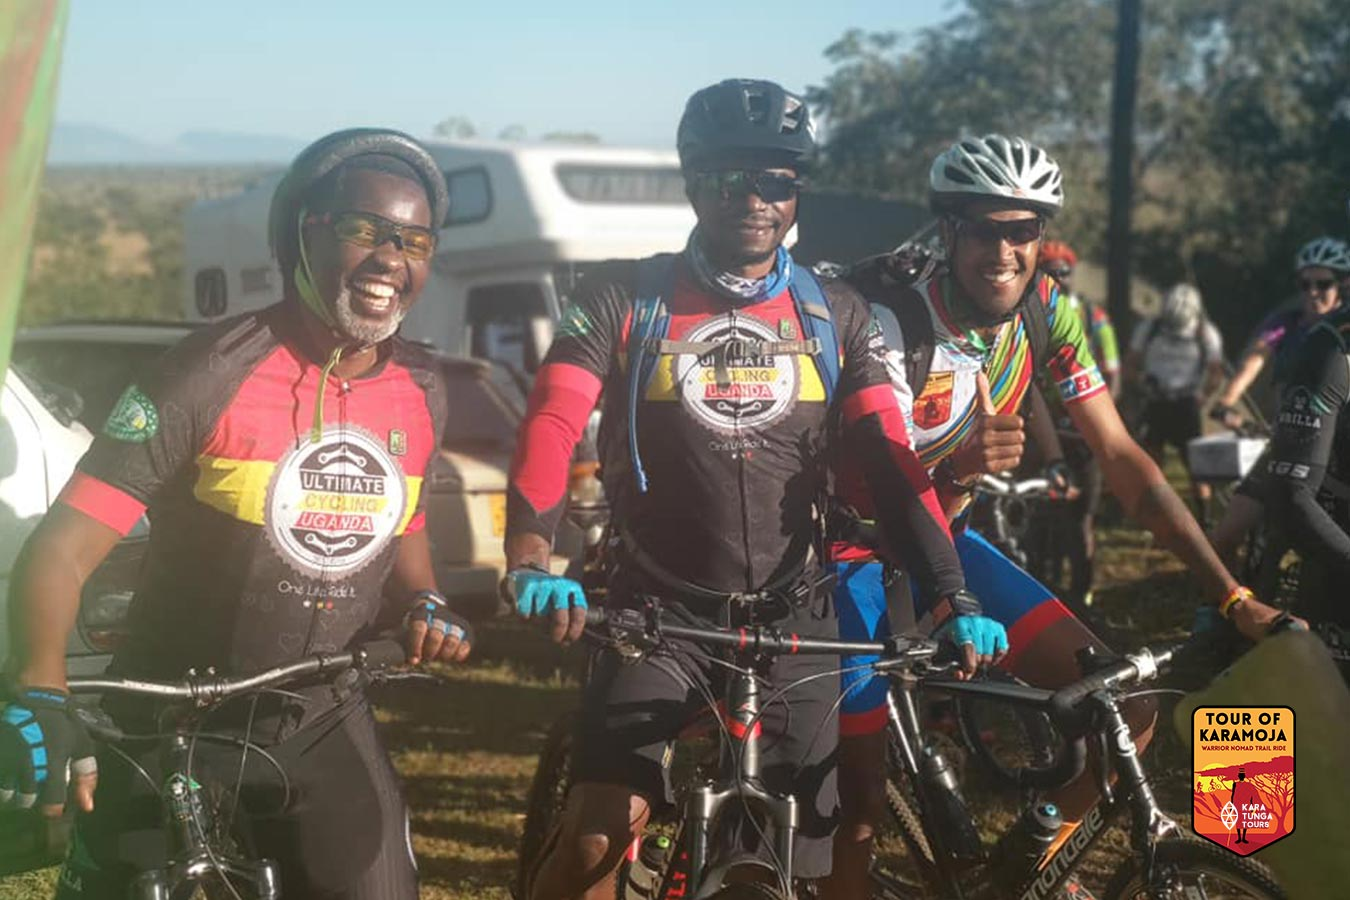 kara-tunga-tour-of-karamoja-2020-bike-event-uganda-amos-wakesa-3